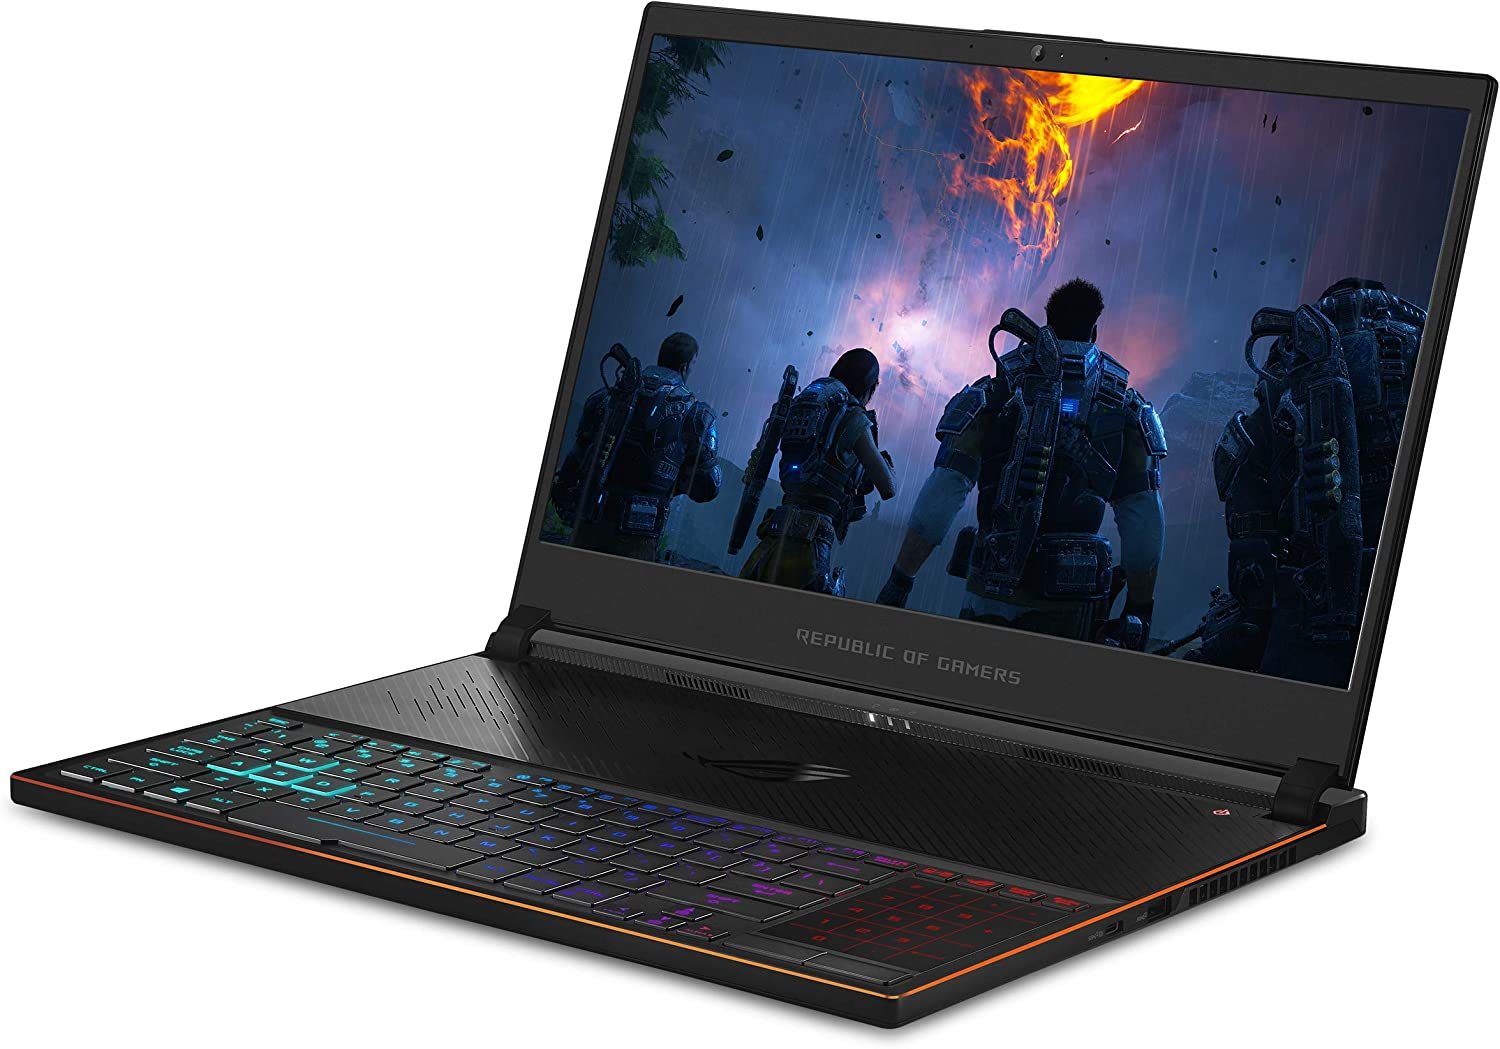 9 Best NVIDIA GTX 1060 Laptops in 2021 [Expert Recommendations]